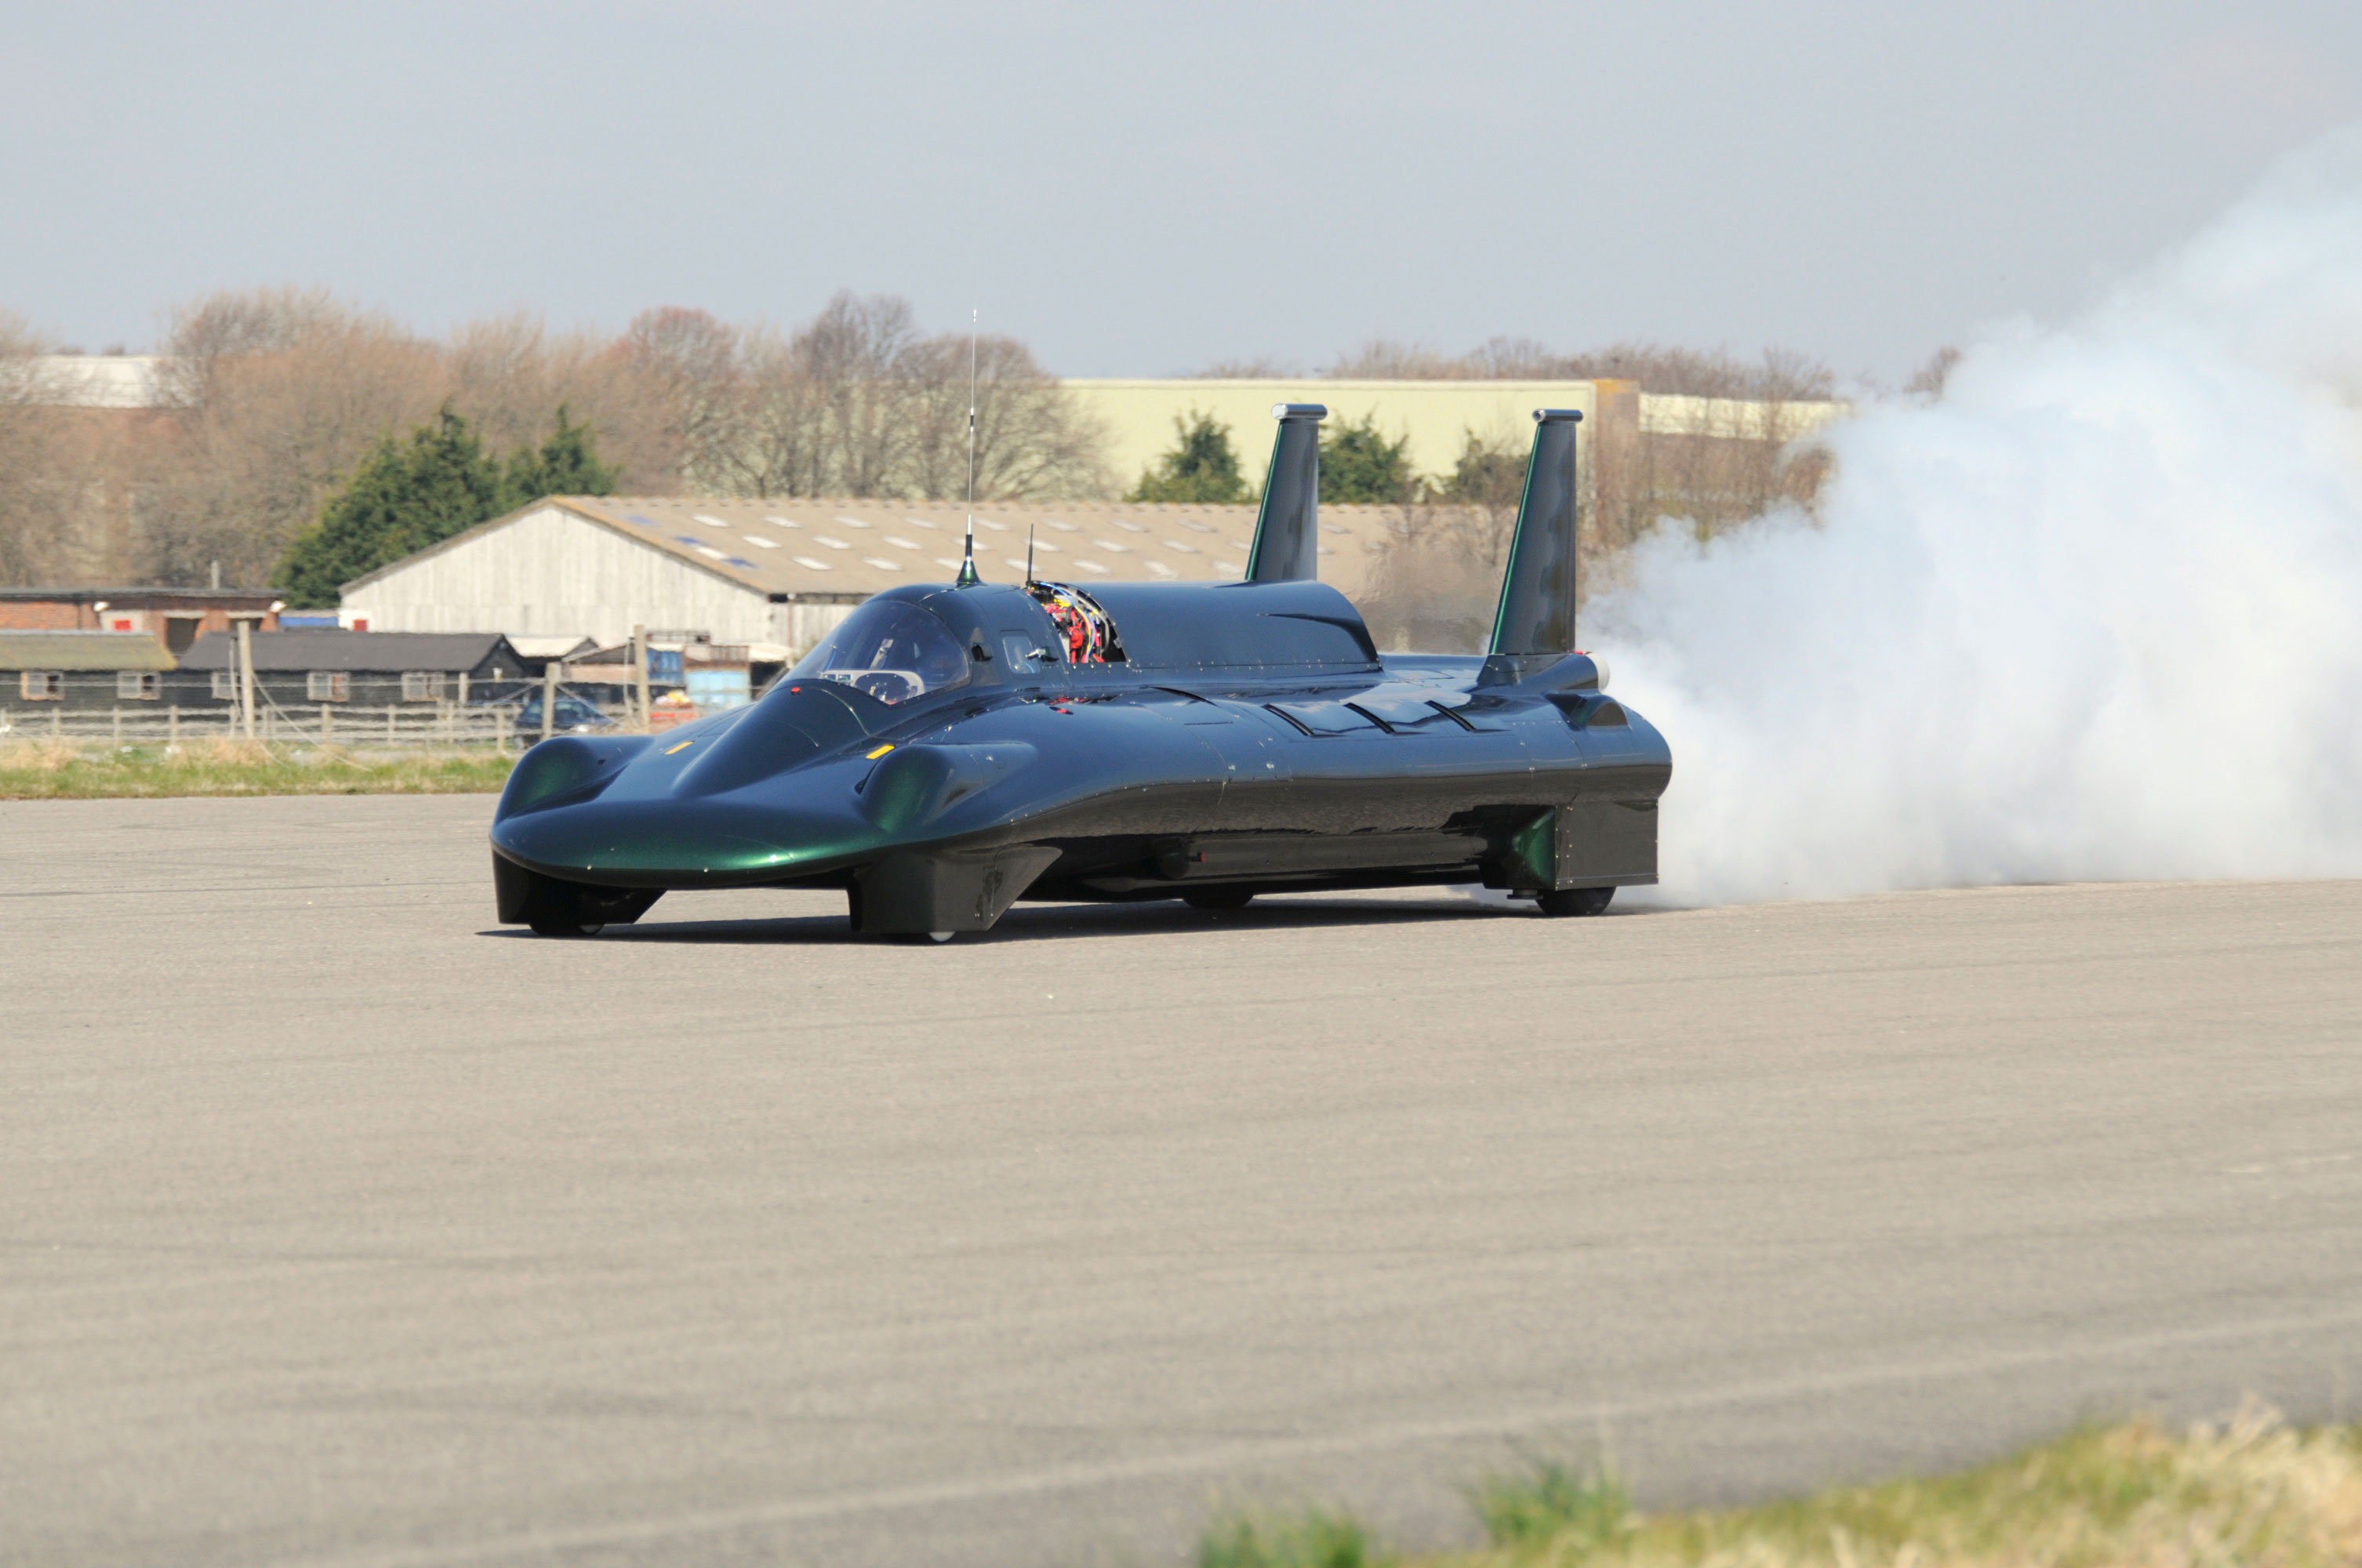 Record-breaking 2008 British Steam Car Inspiration in action